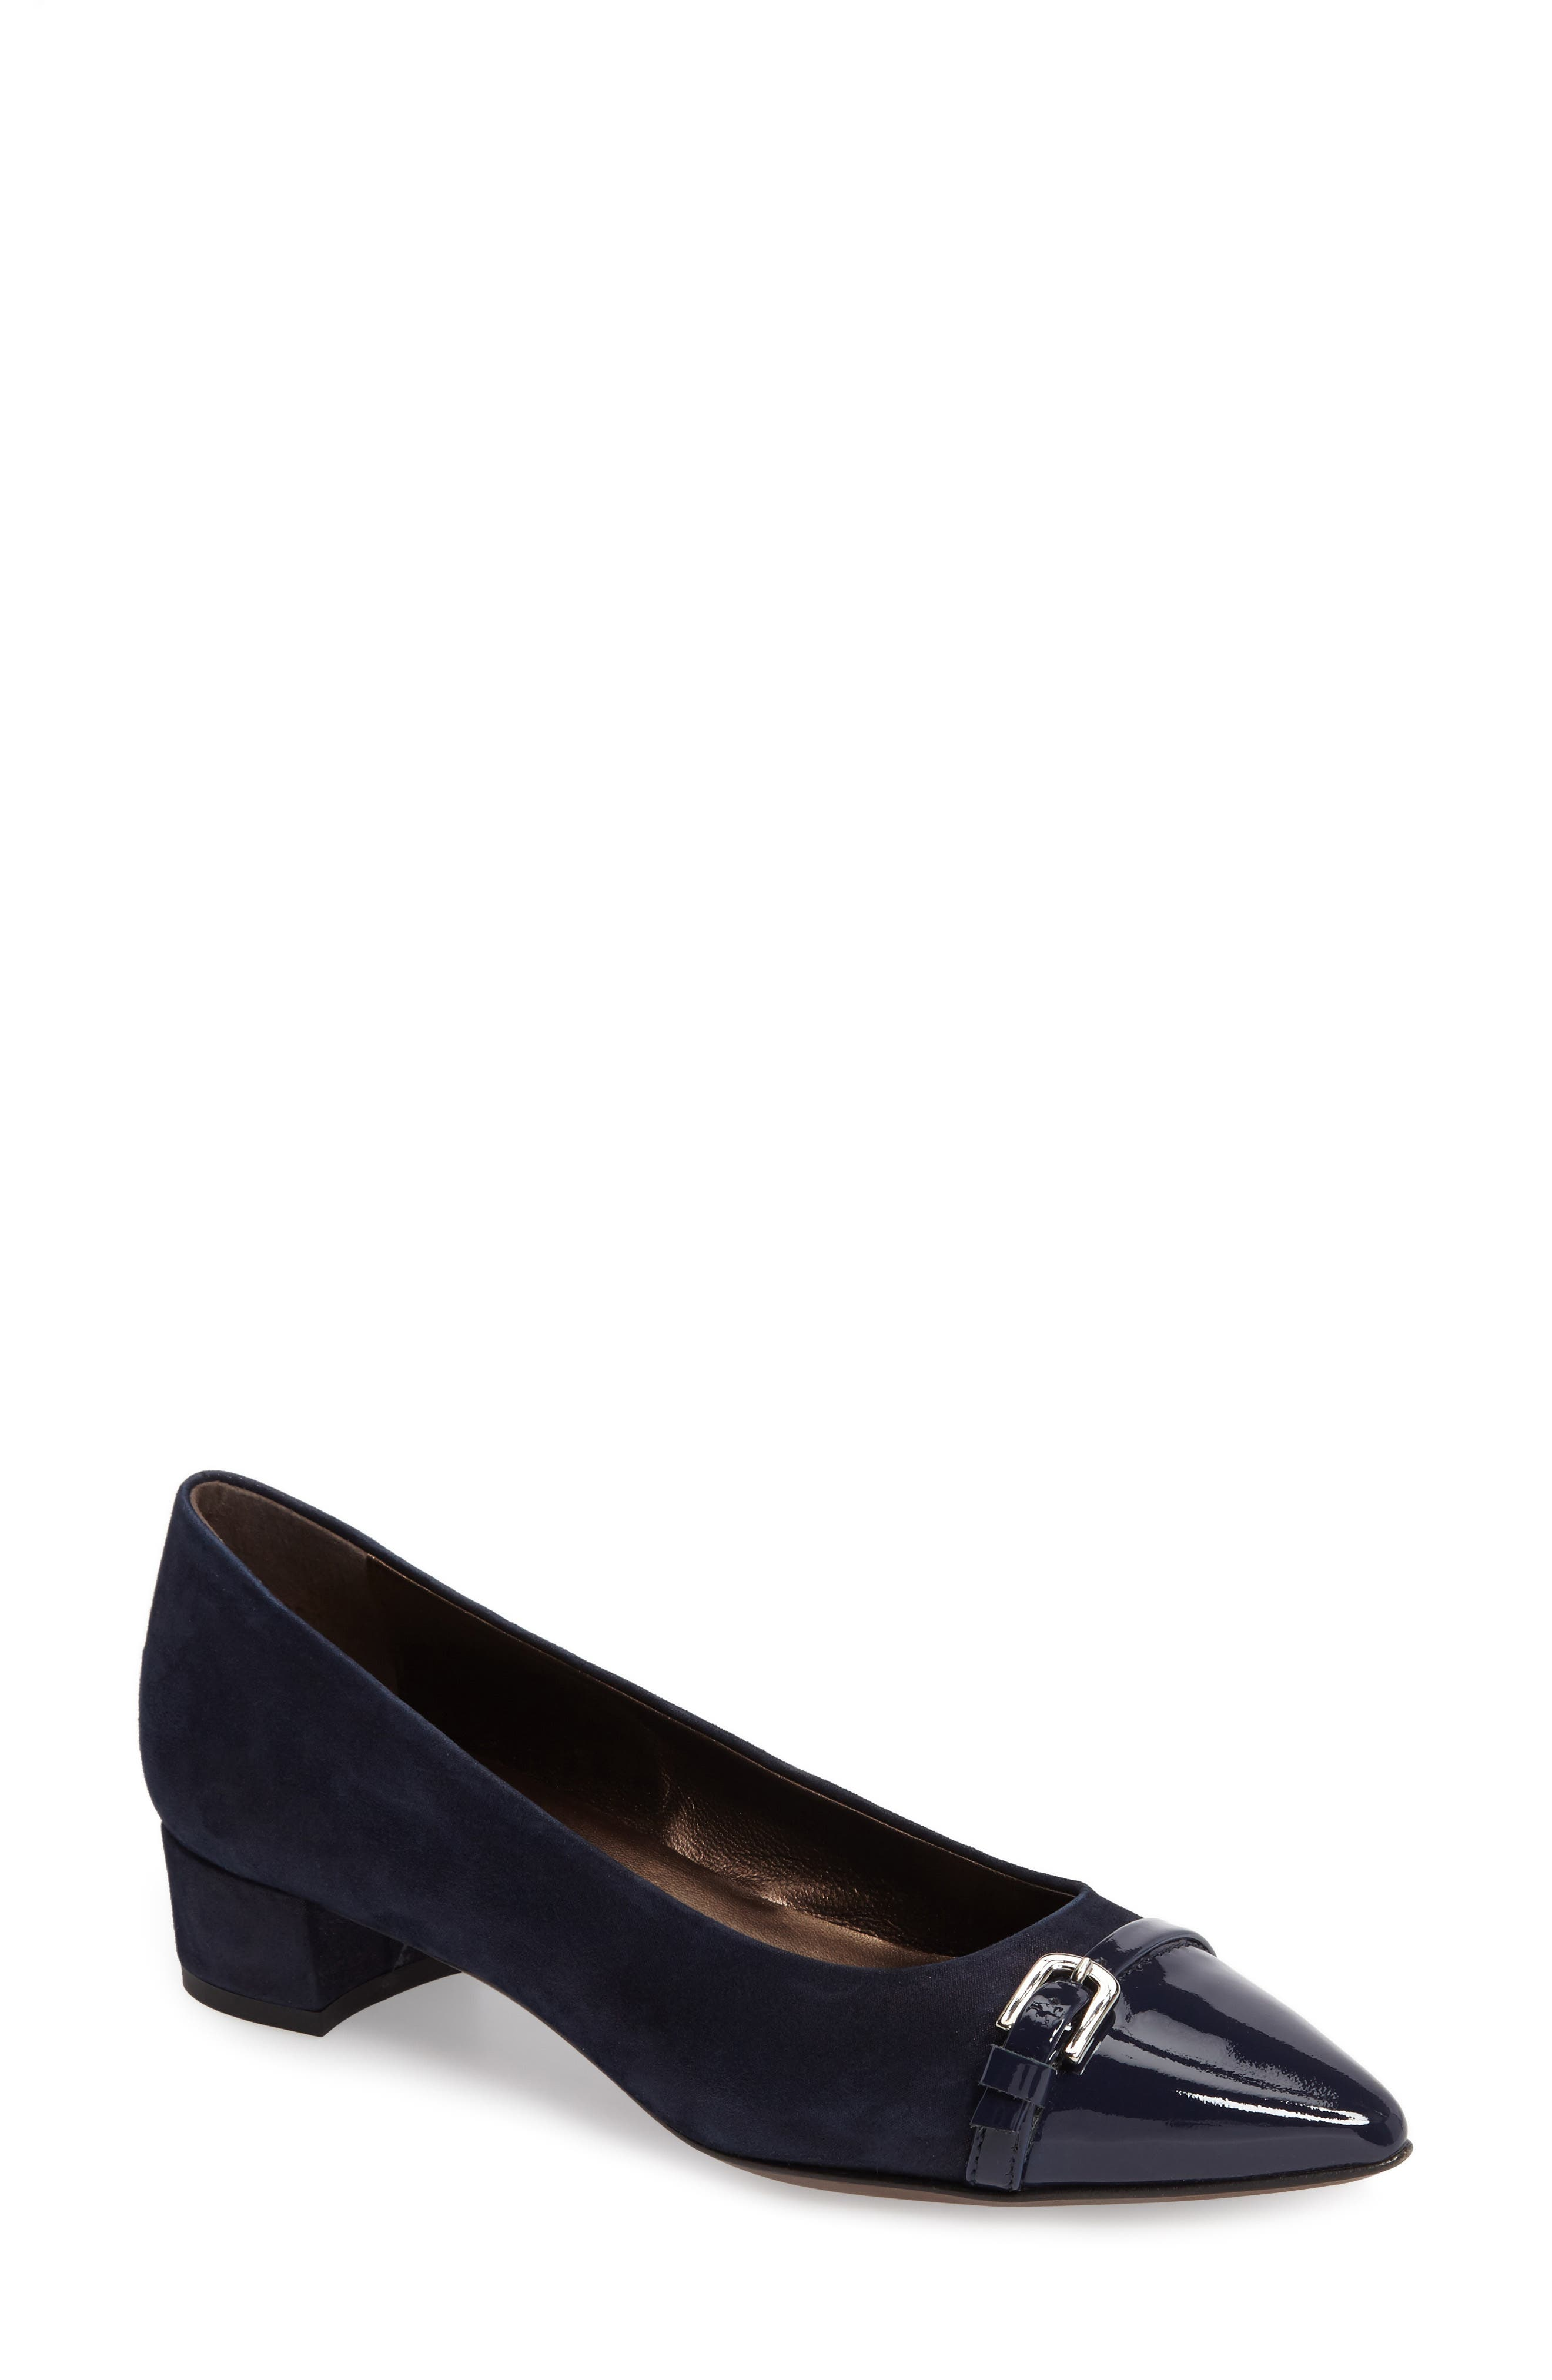 Belted Block Heel Pump,                         Main,                         color, Night Shimmer Leather